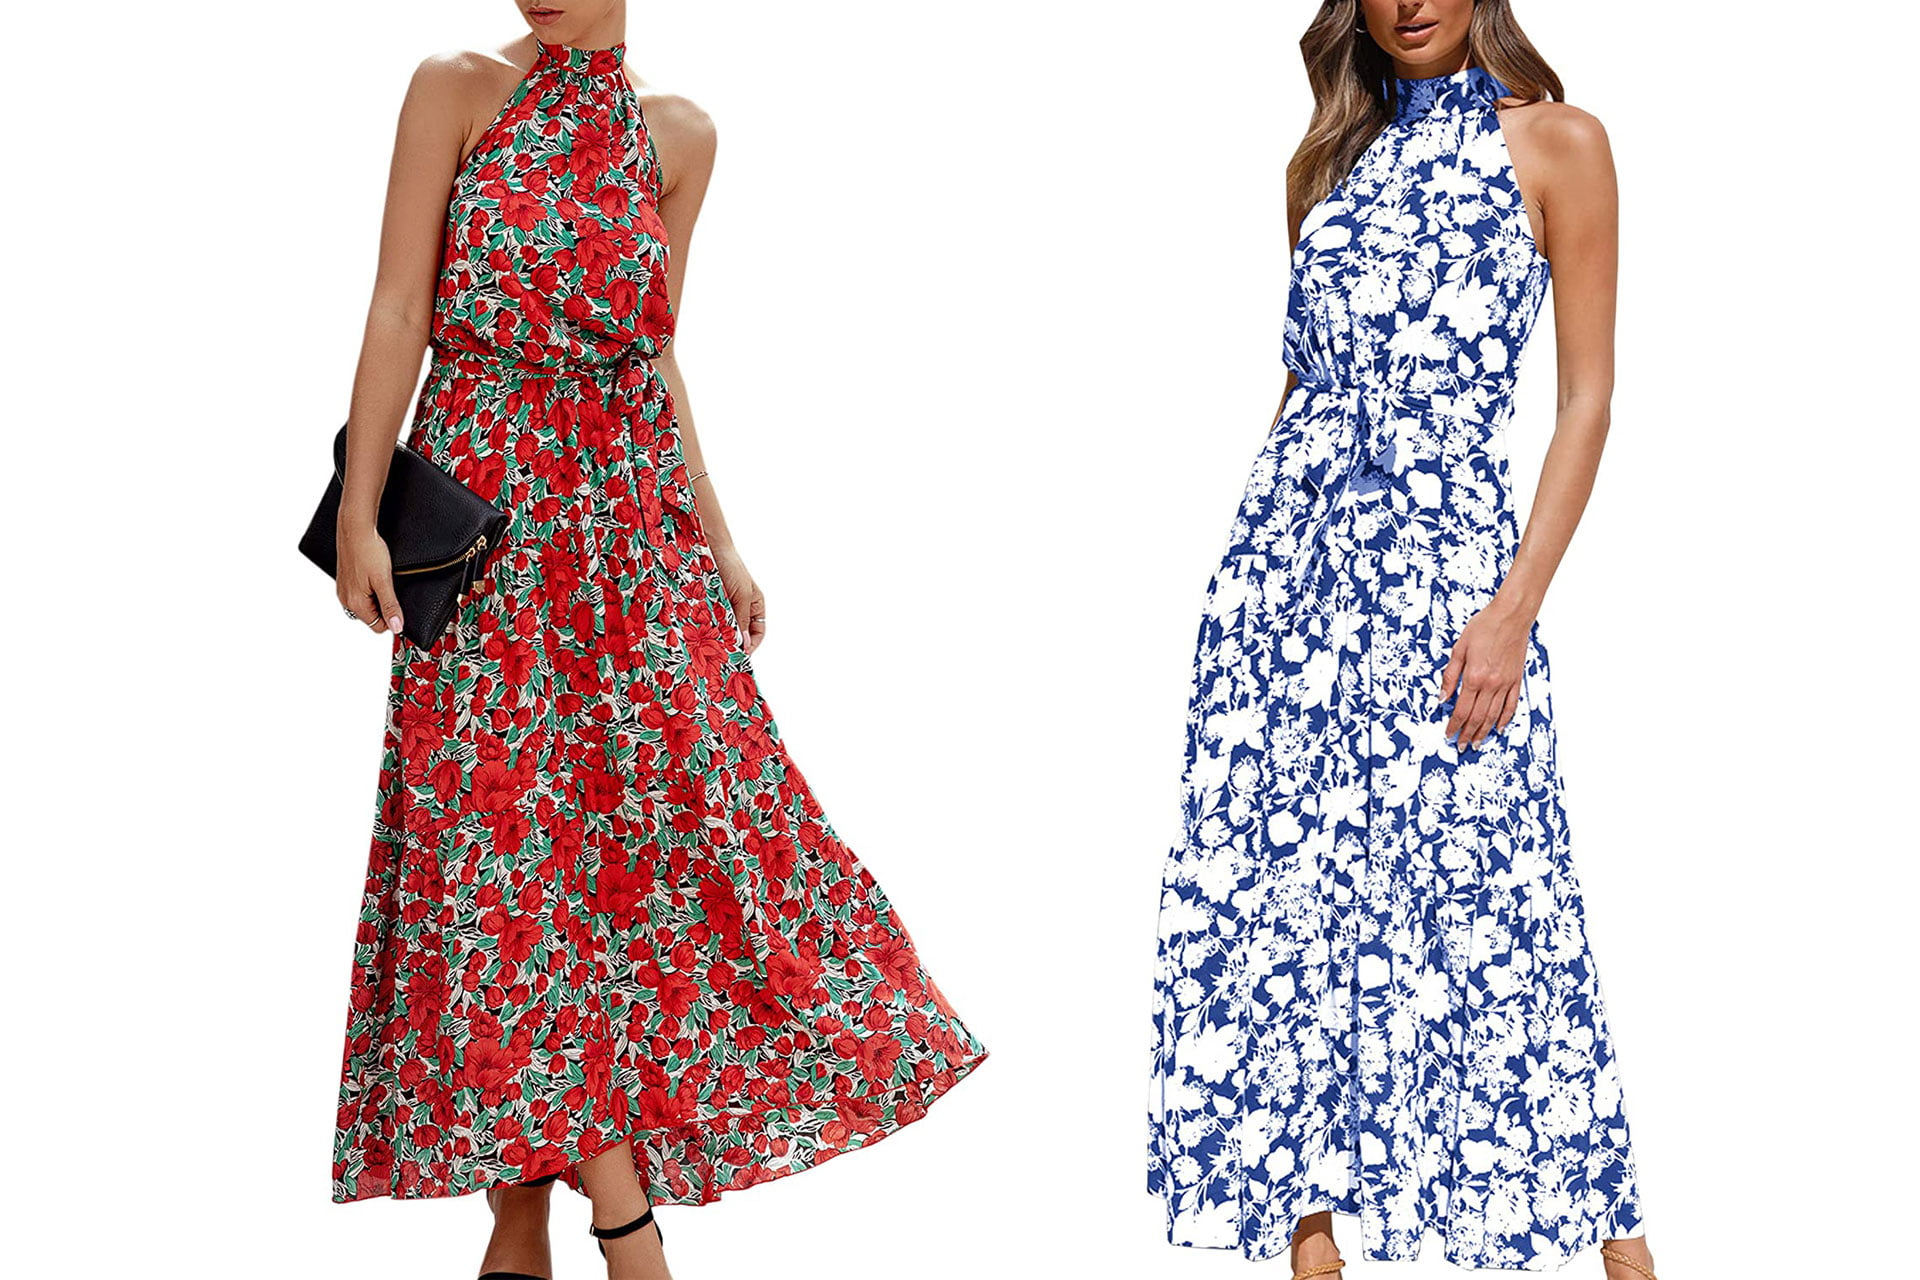 Types of Summer Dresses V Neck Backless Maxi Party Evening Dress